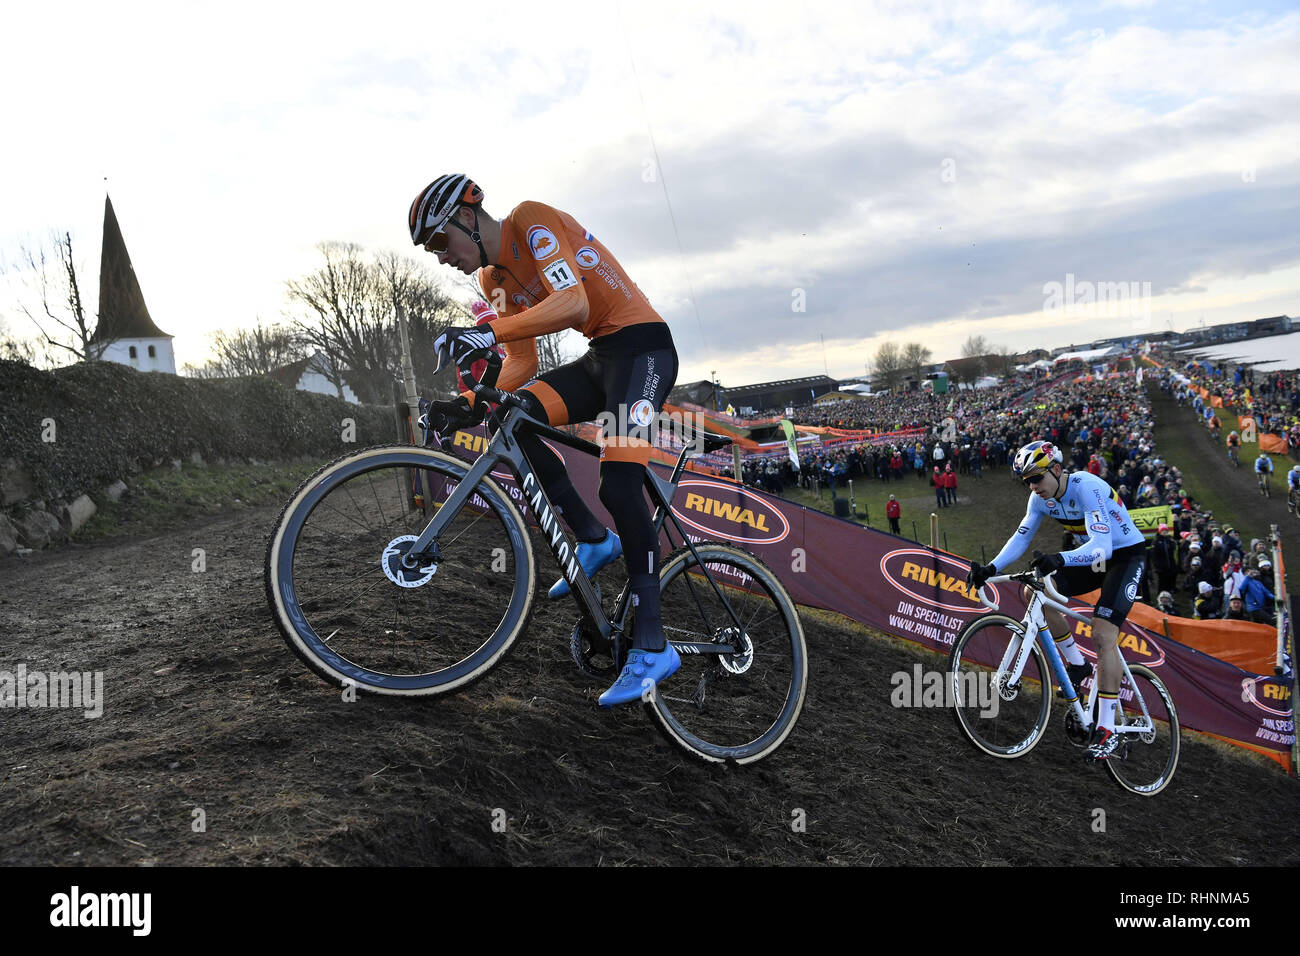 https www alamy com bogense denmark 3rd feb 2019 mathieu van der poel of the netherlands followed by wout van aert in the mens elite race during the uci 2019 cyclo cross world championships in bogense denmark mathieu van der poel eventually won the god medal credit lars moellerzuma wirealamy live news image234660893 html